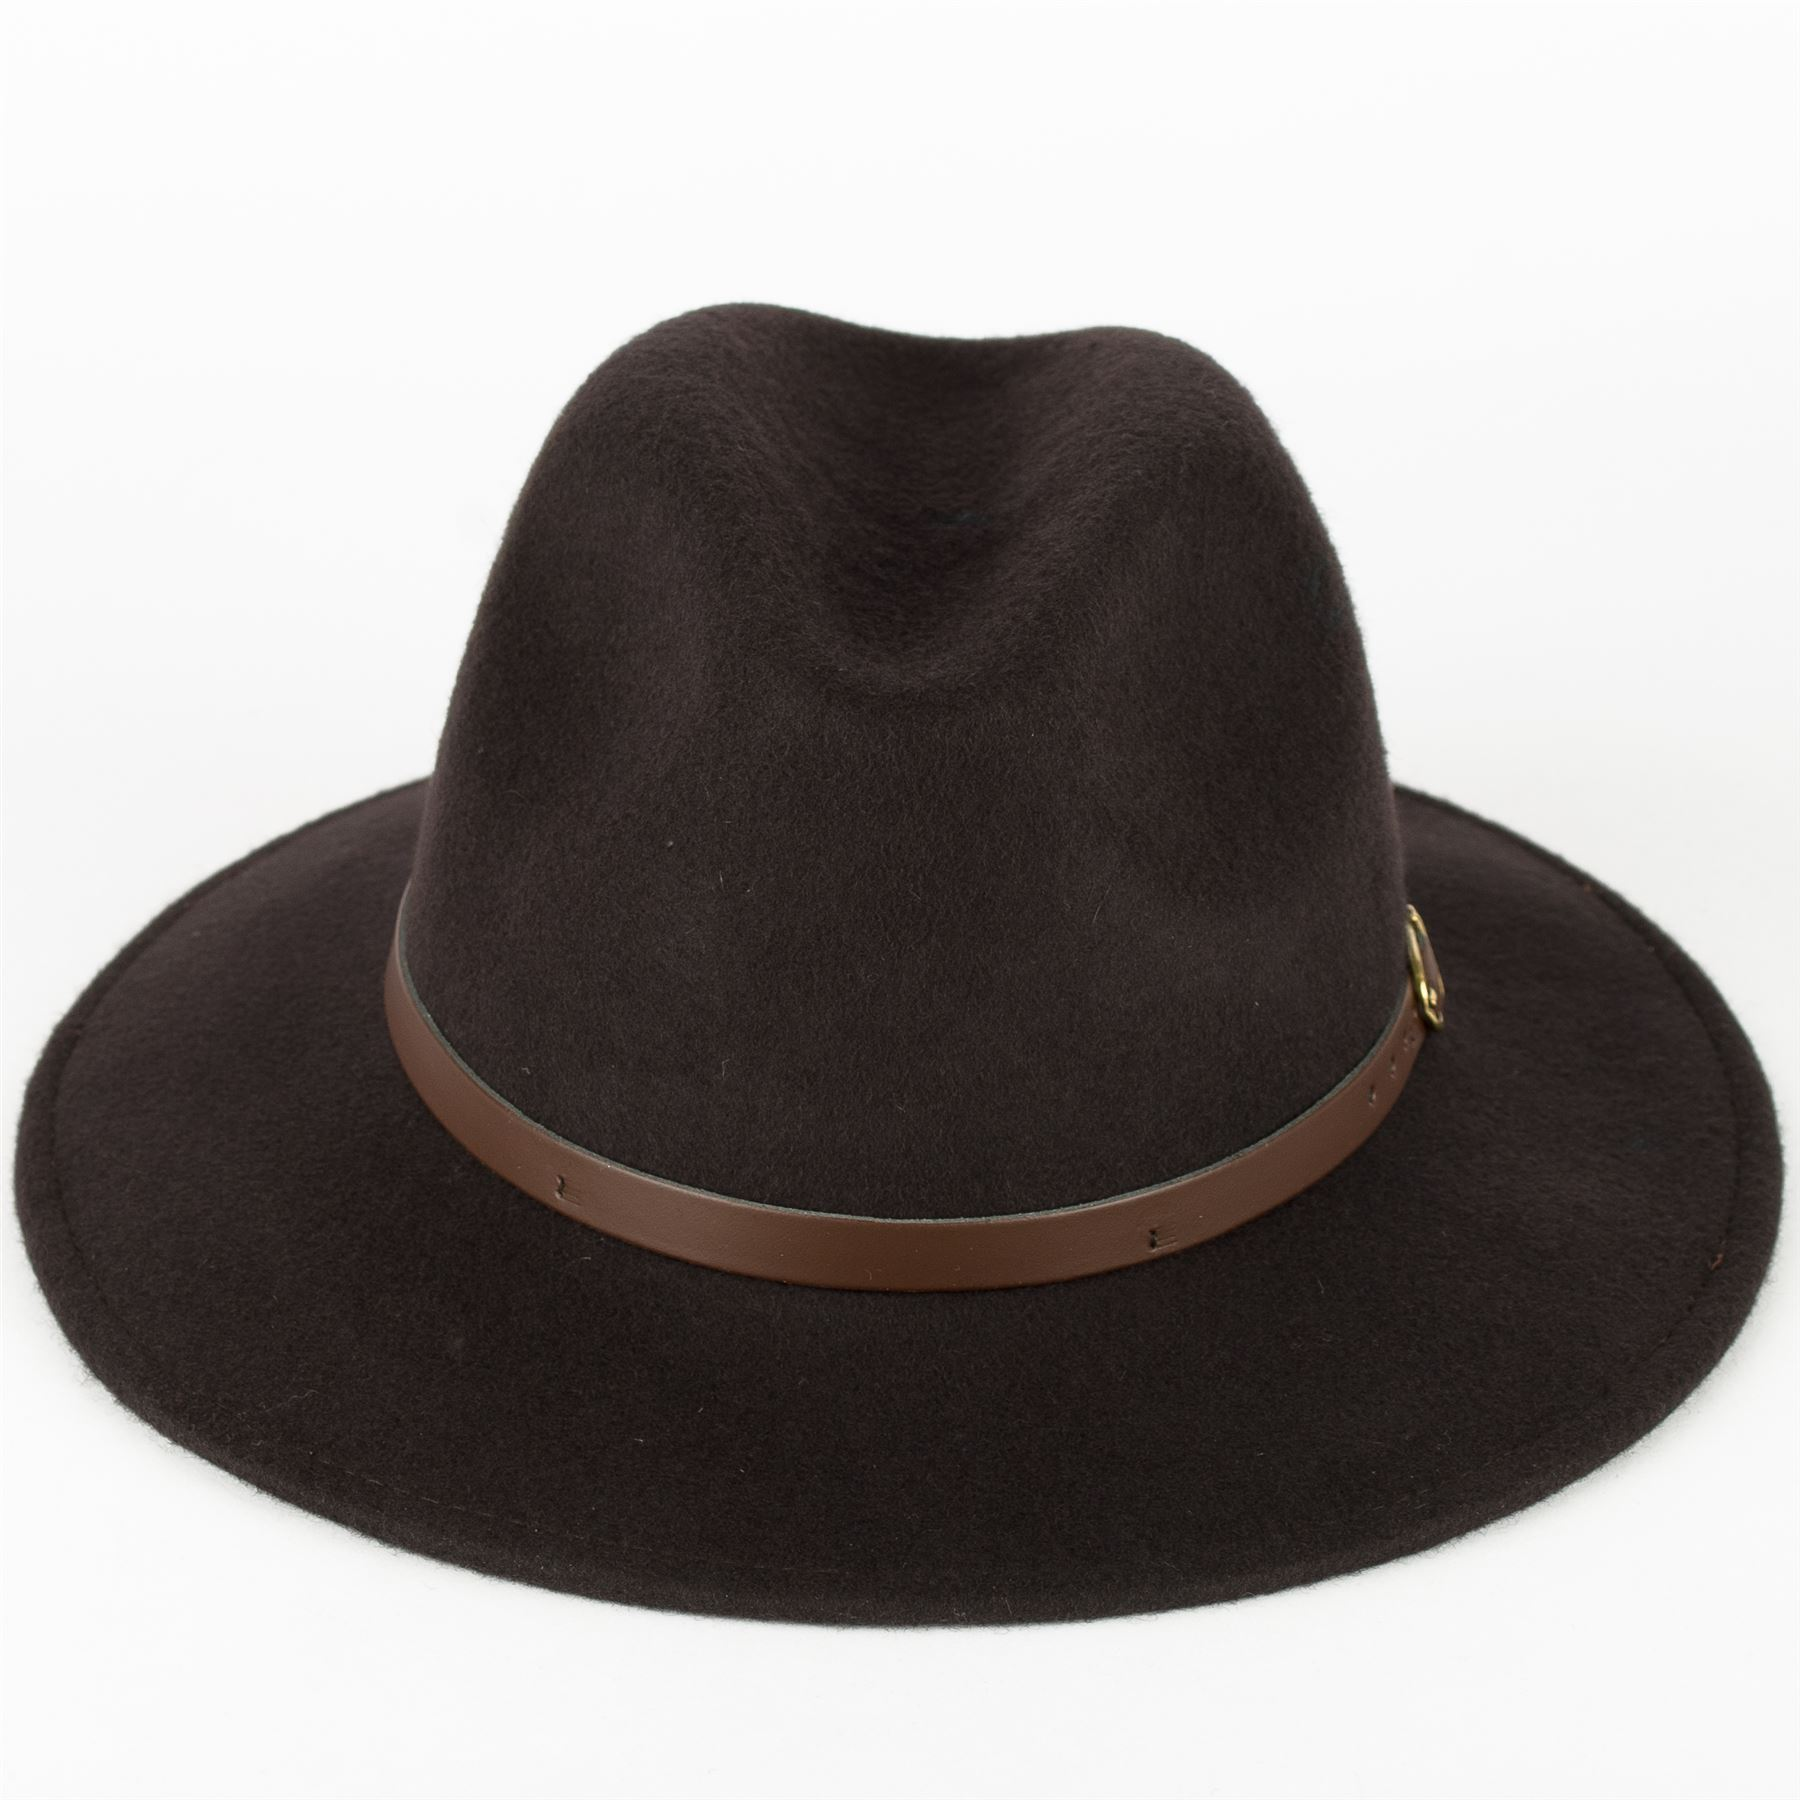 Hat To Socks Wool Fedora Hat with Leather Belt Waterproof   Crushable  Handmade in Italy a2c8a859655